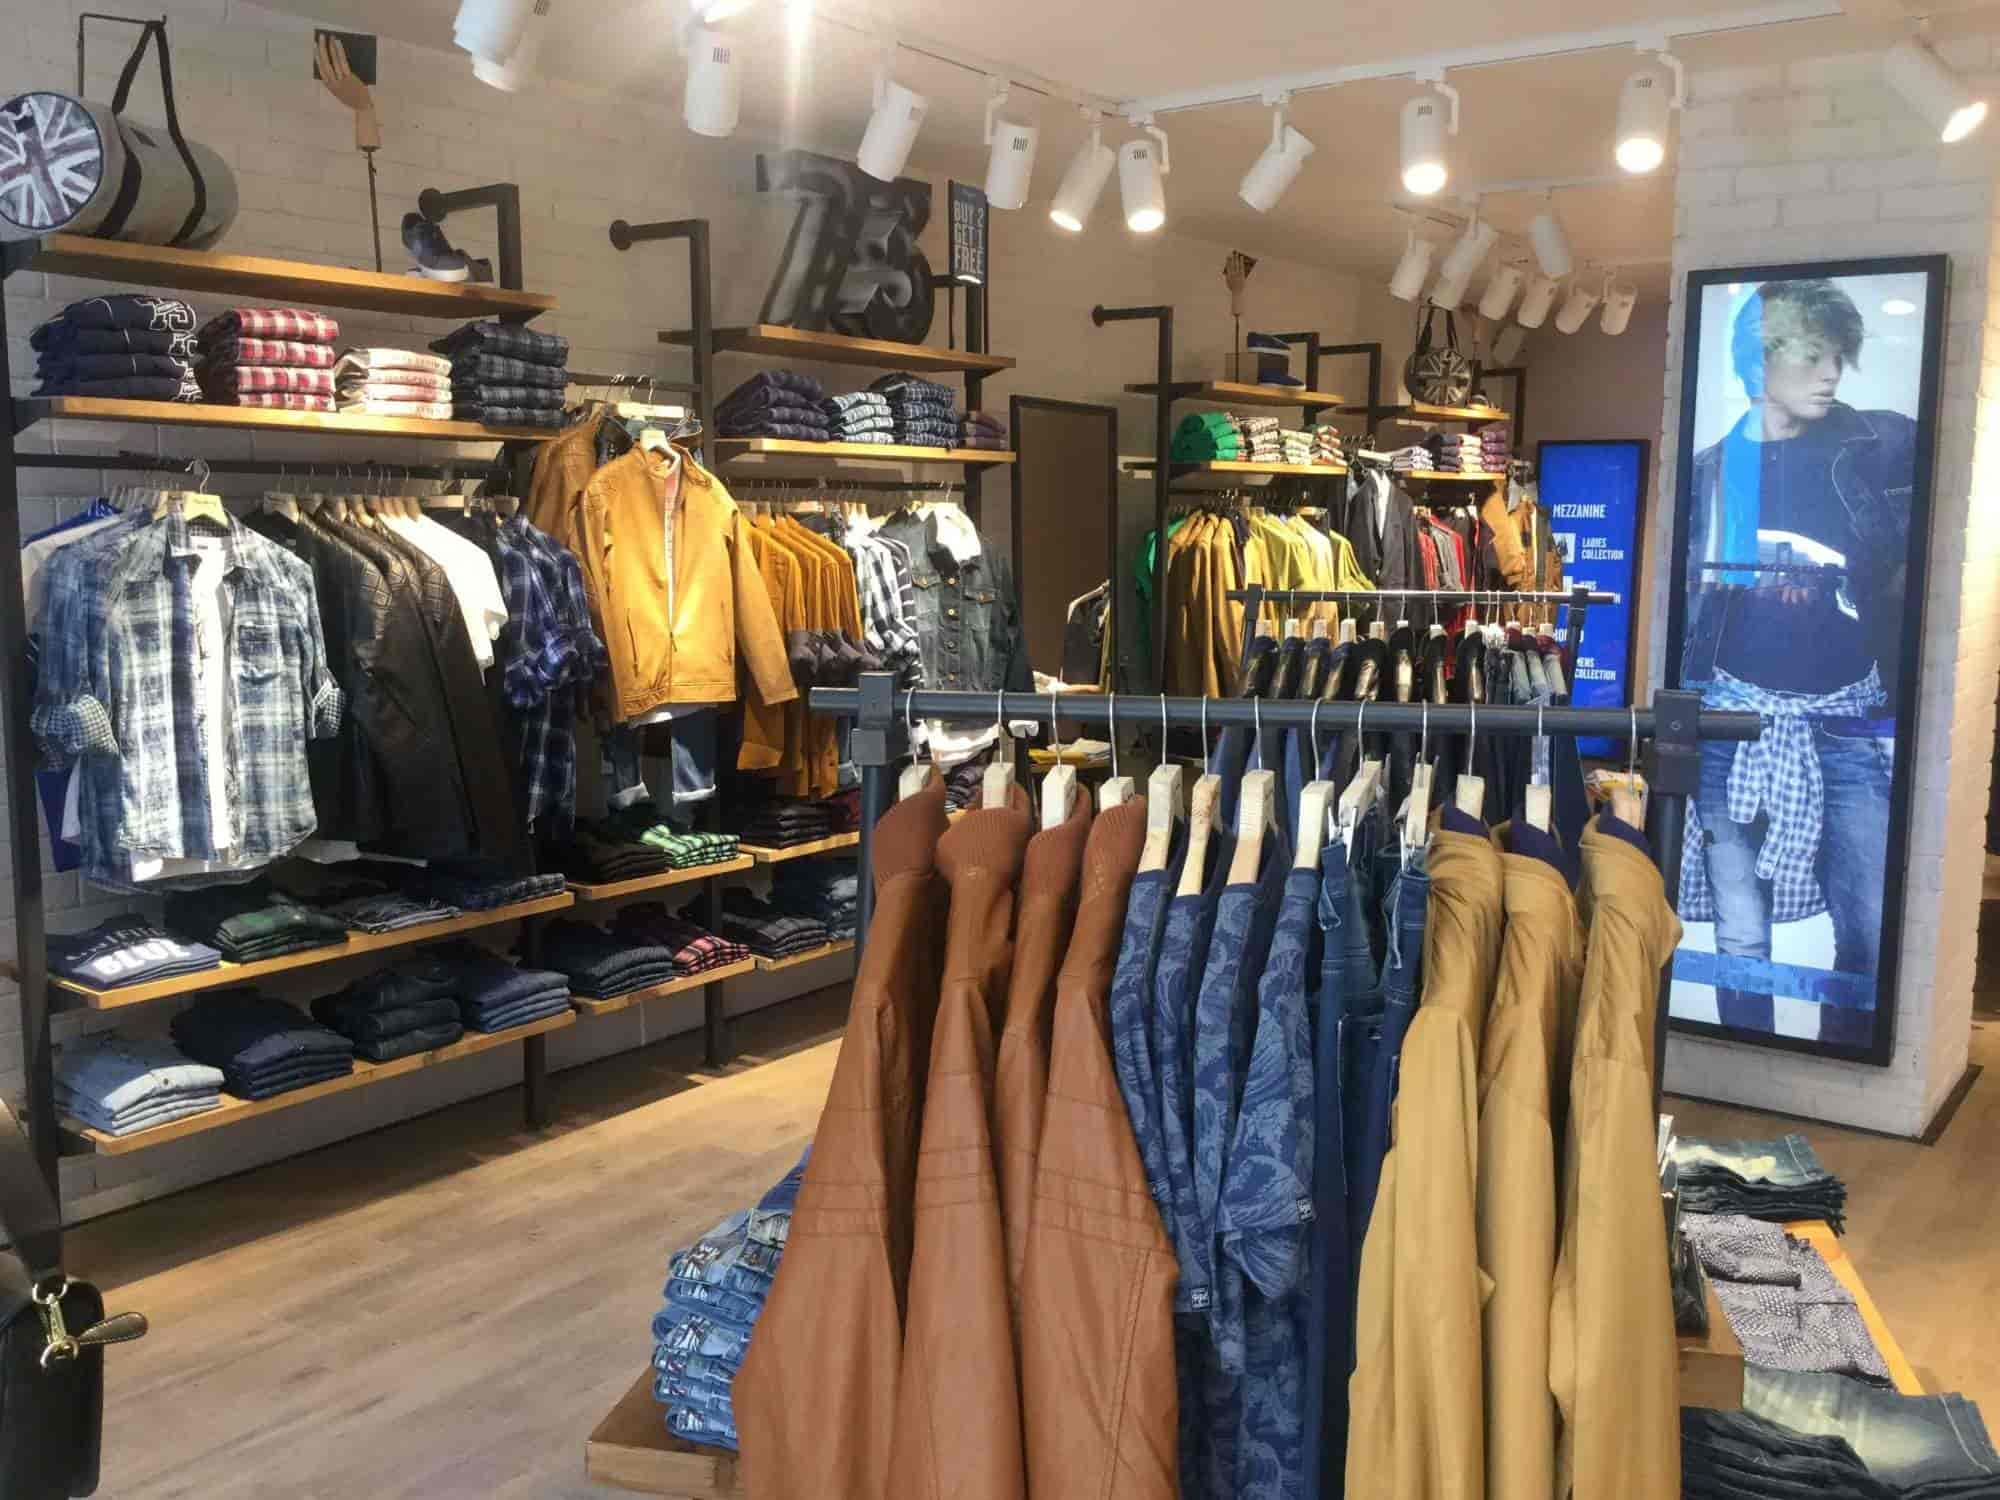 9618d7a6c Pepe Jeans, Indiranagar - Readymade Garment Retailers in Bangalore -  Justdial